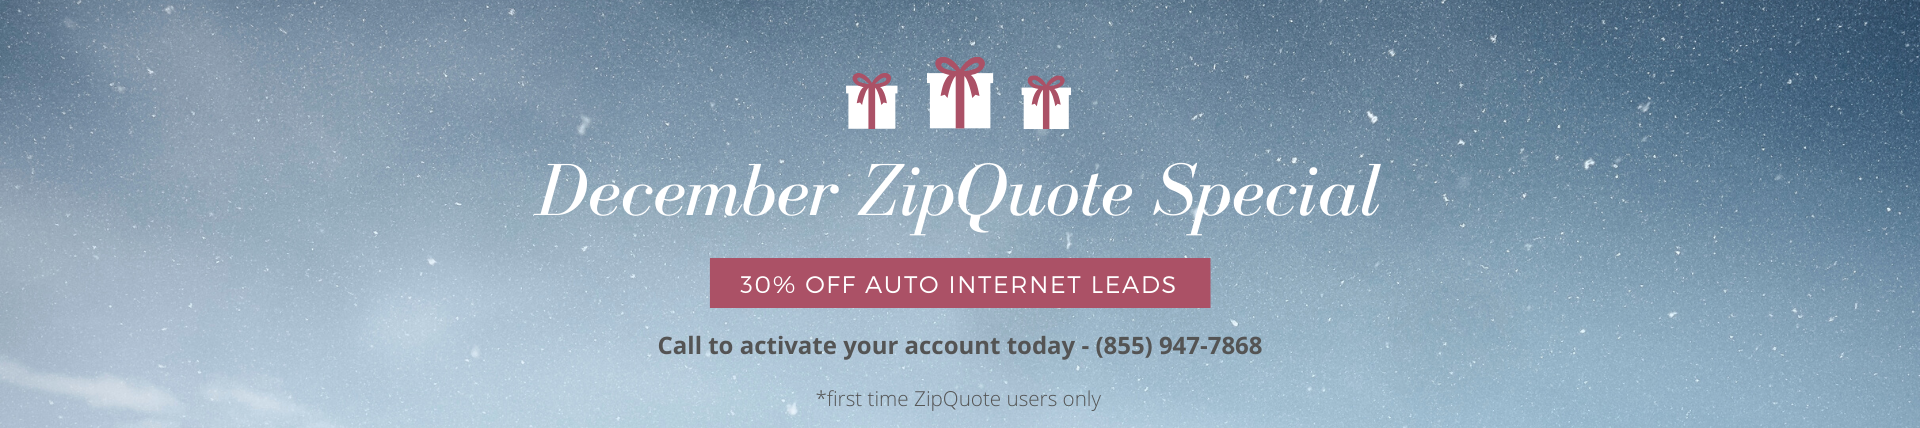 ZipQuote December Lead Sale